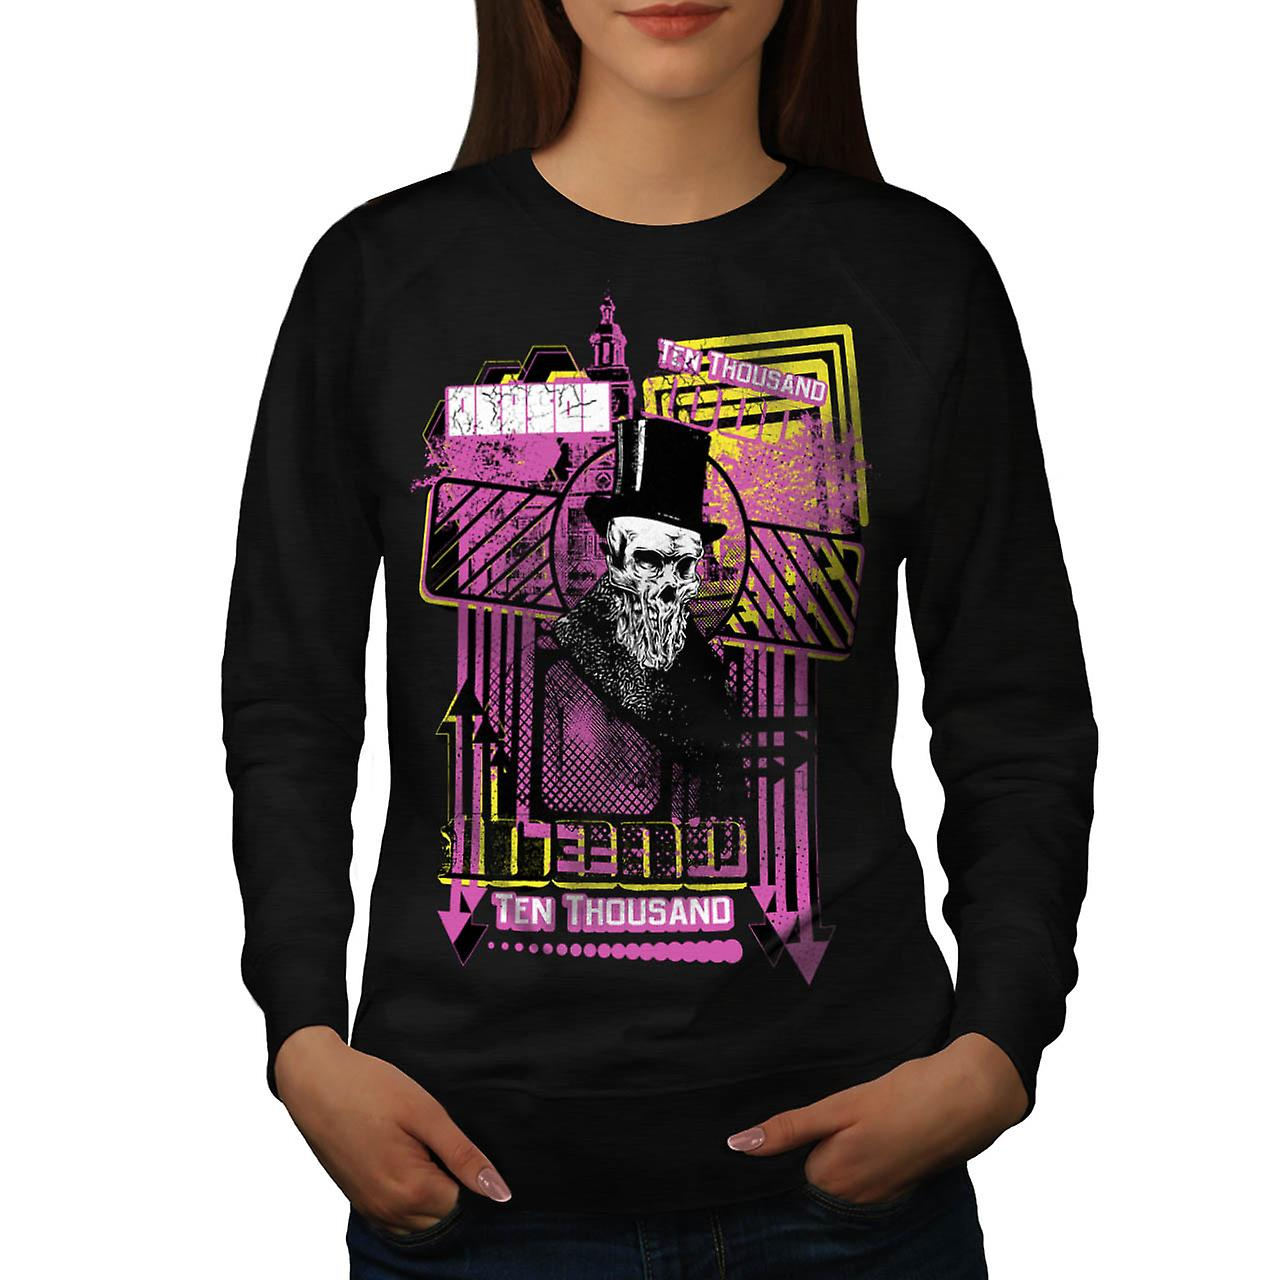 Reason For Death Gent Haunted Women Black Sweatshirt | Wellcoda